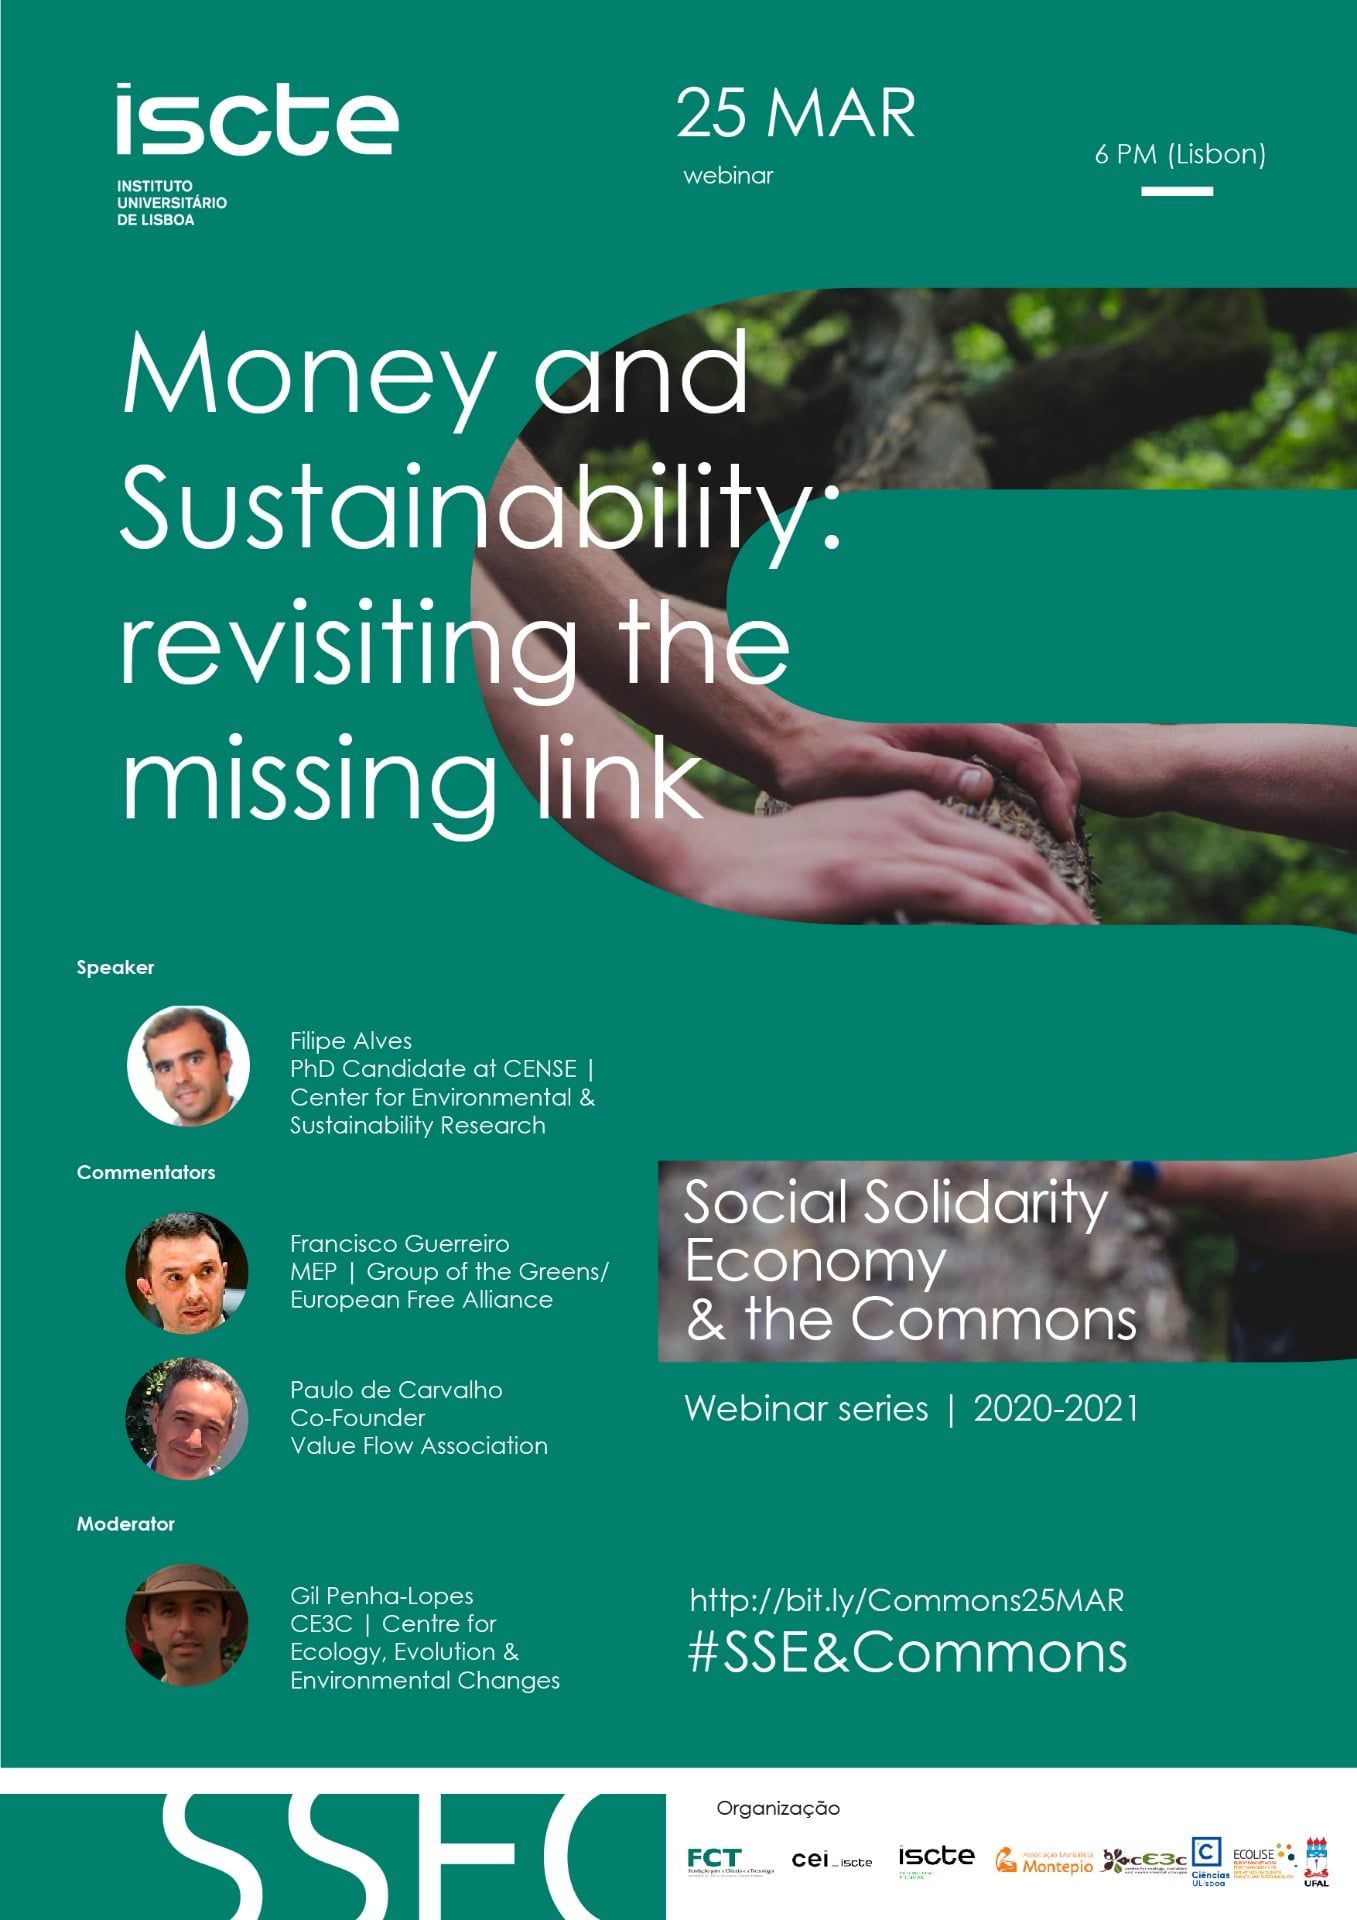 Webinar: Money and Sustainability, revisiting the missing link